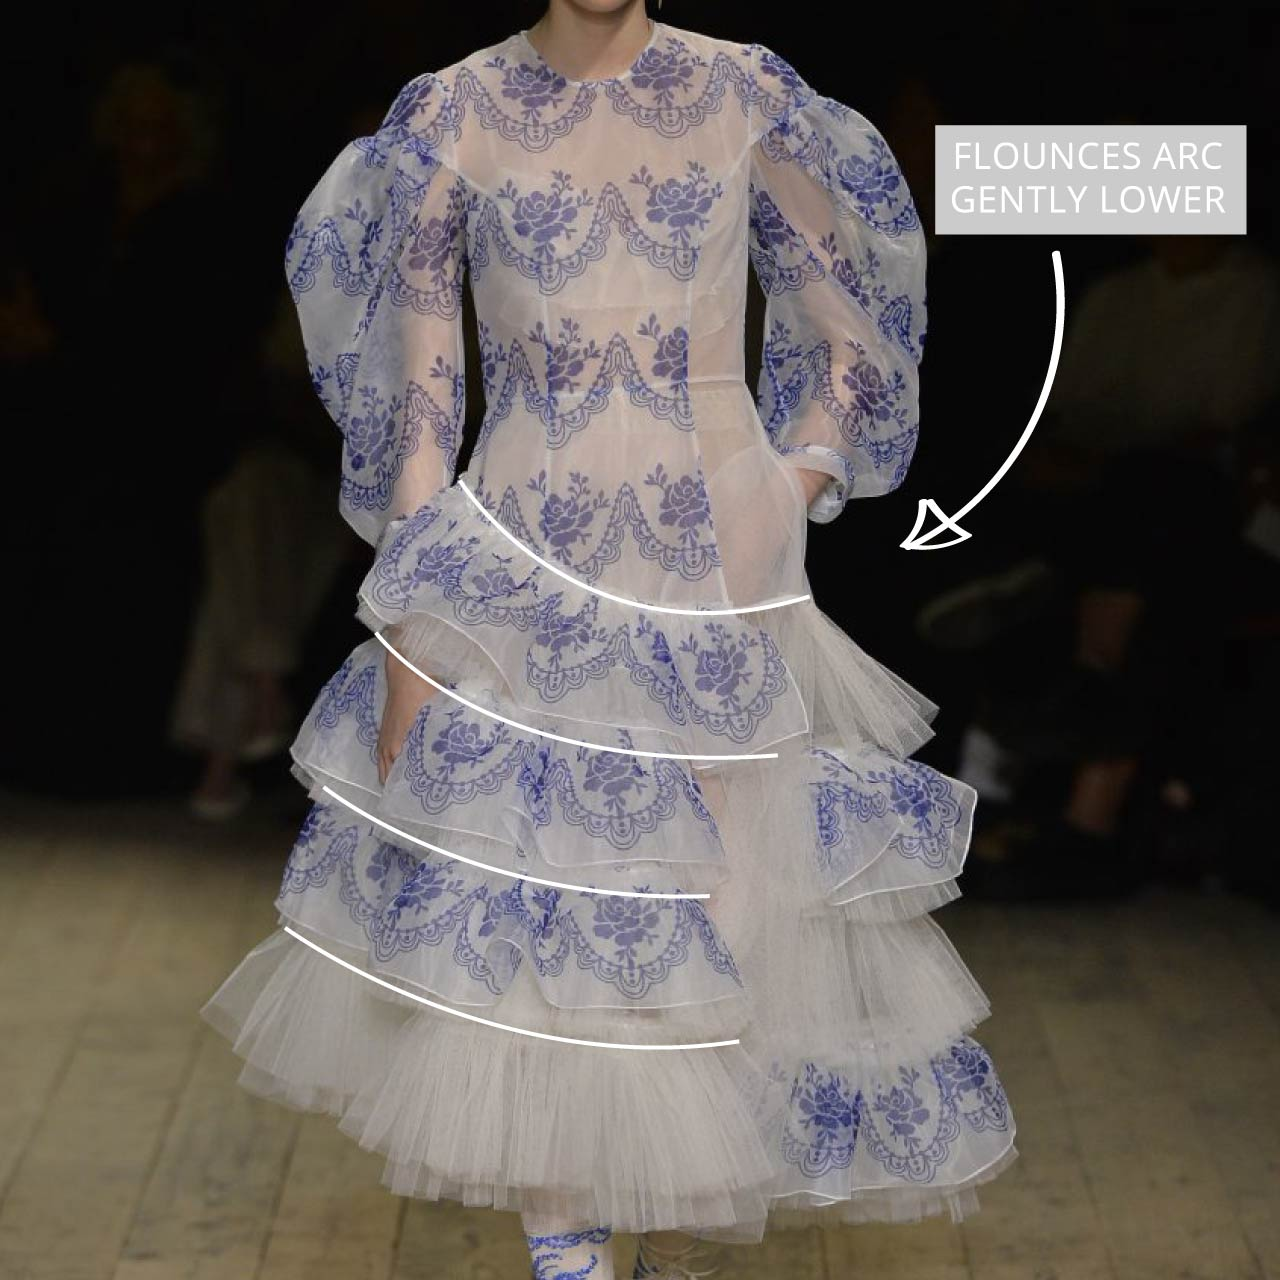 Translucent Layers at Simone Rocha | The Cutting Class. Flounces arc gently lower on dress.